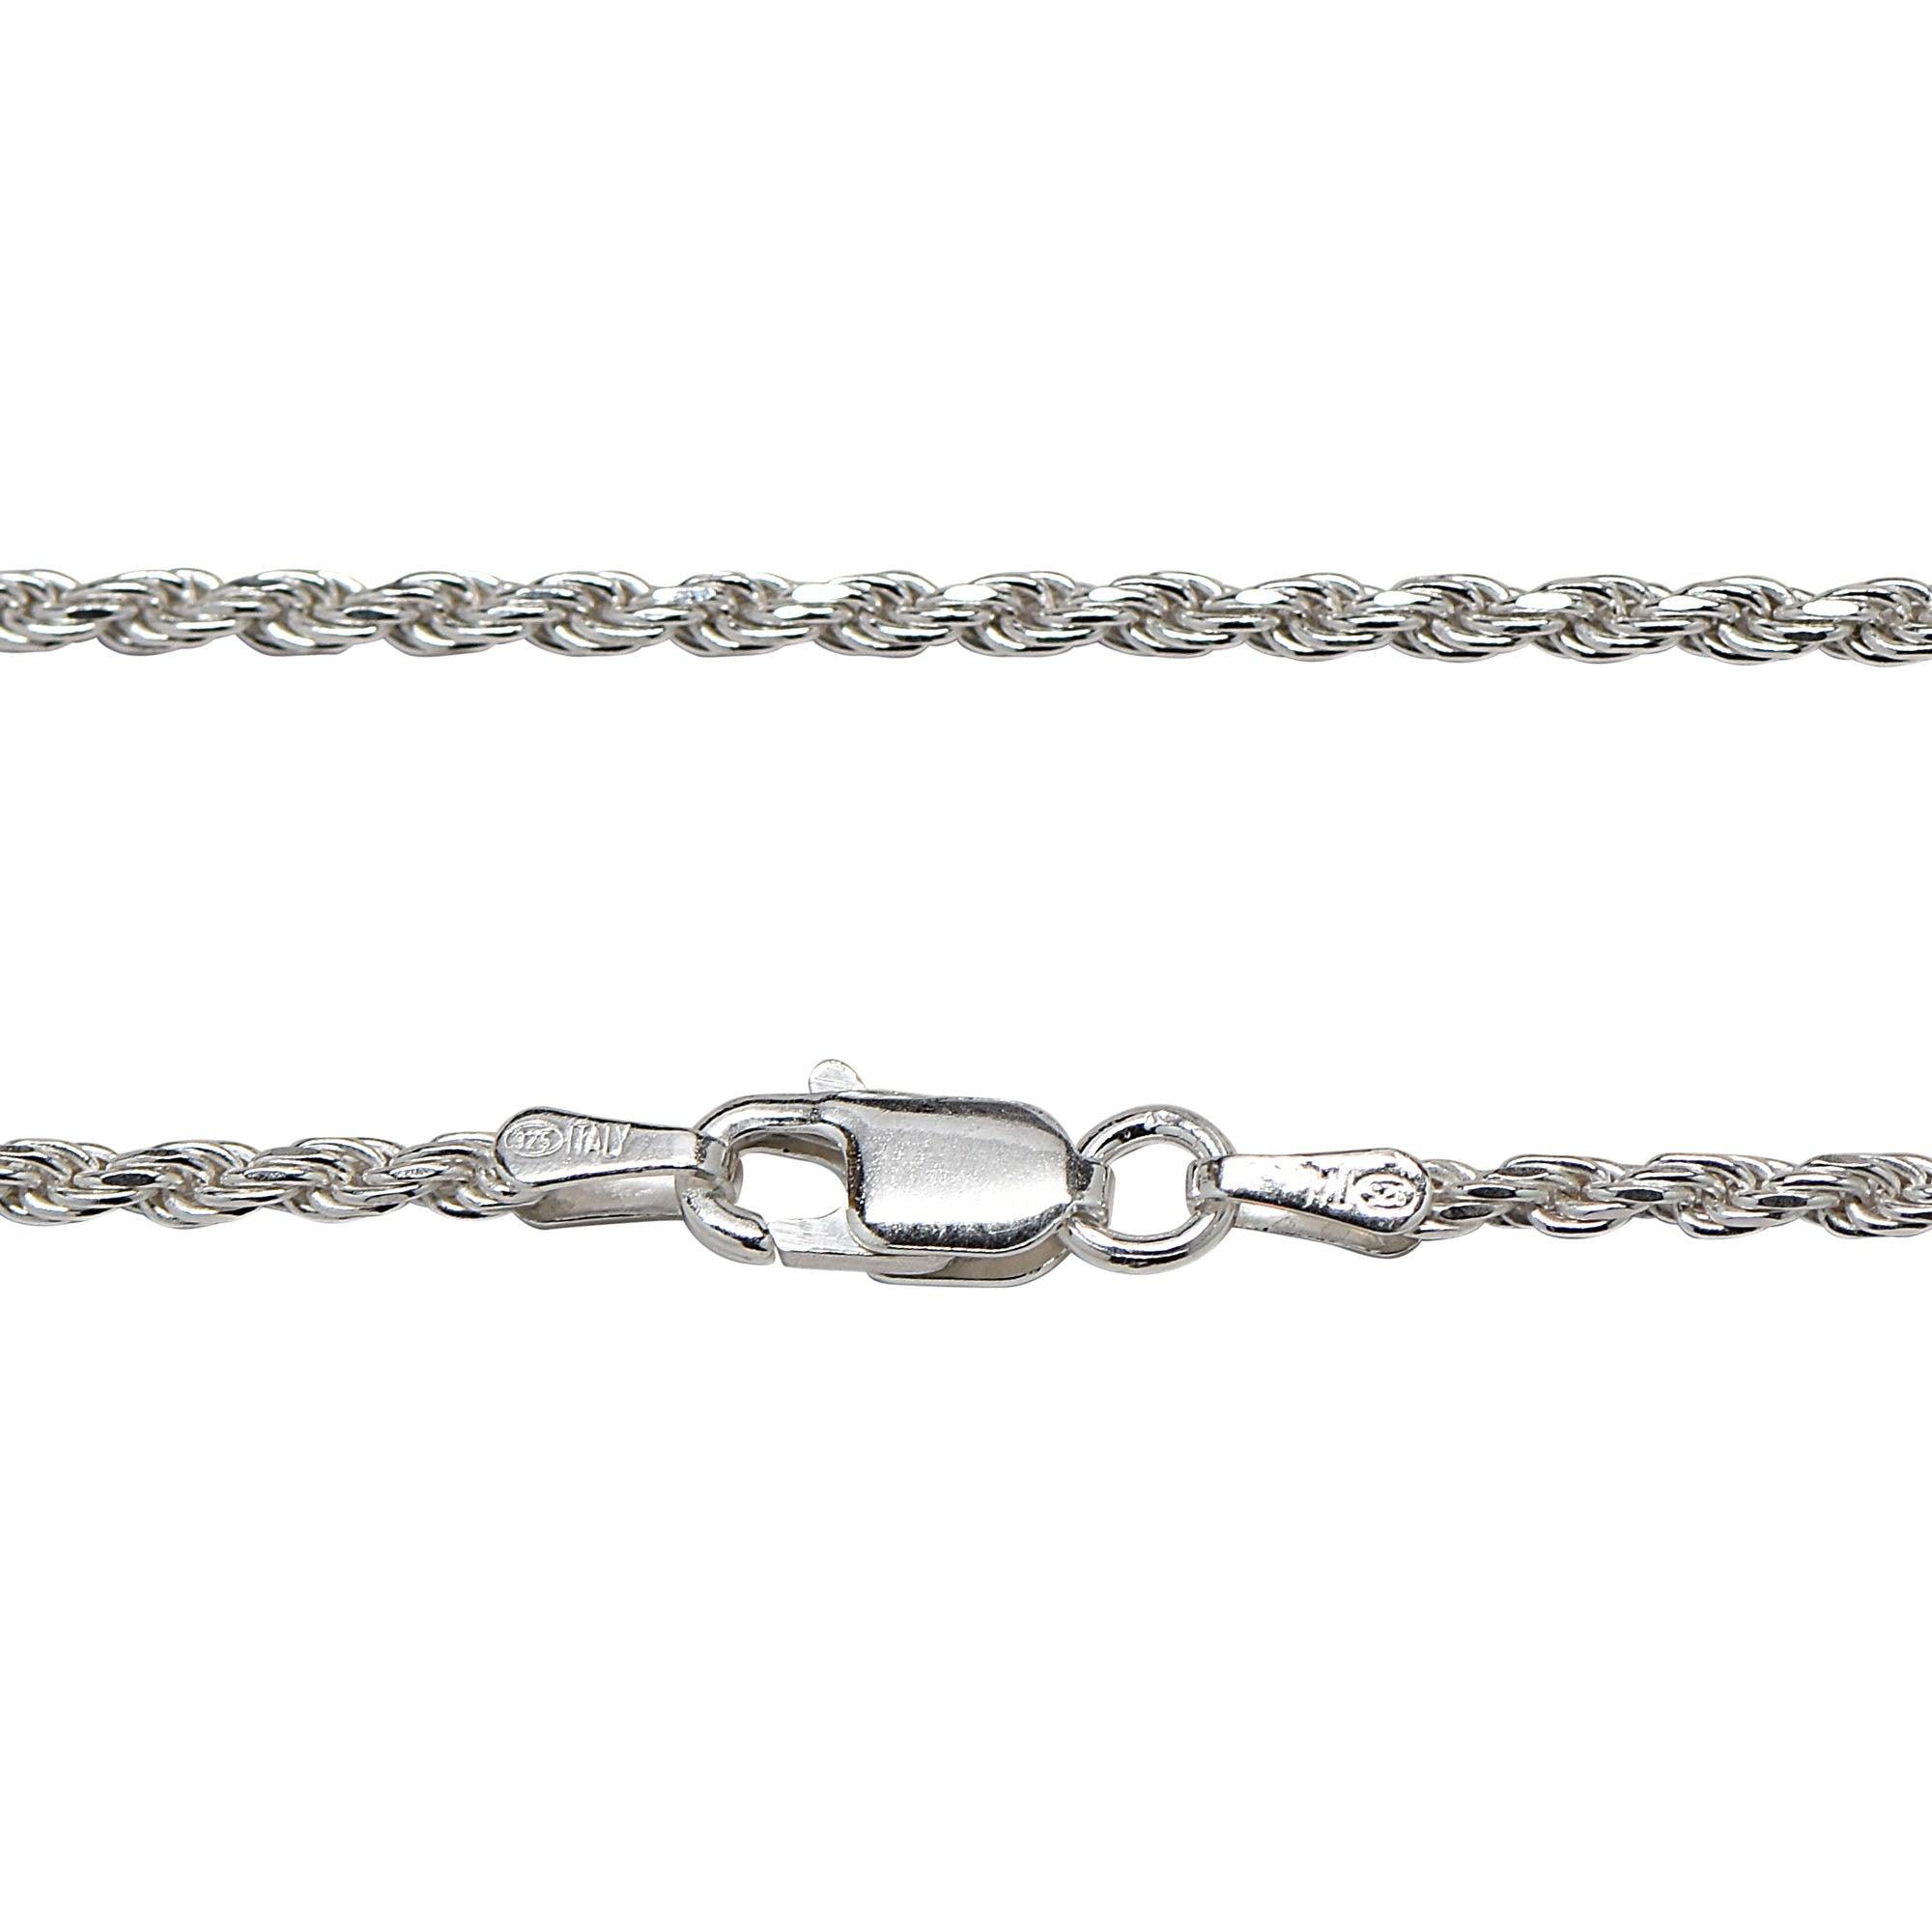 The 1.8mm Figaro Chain